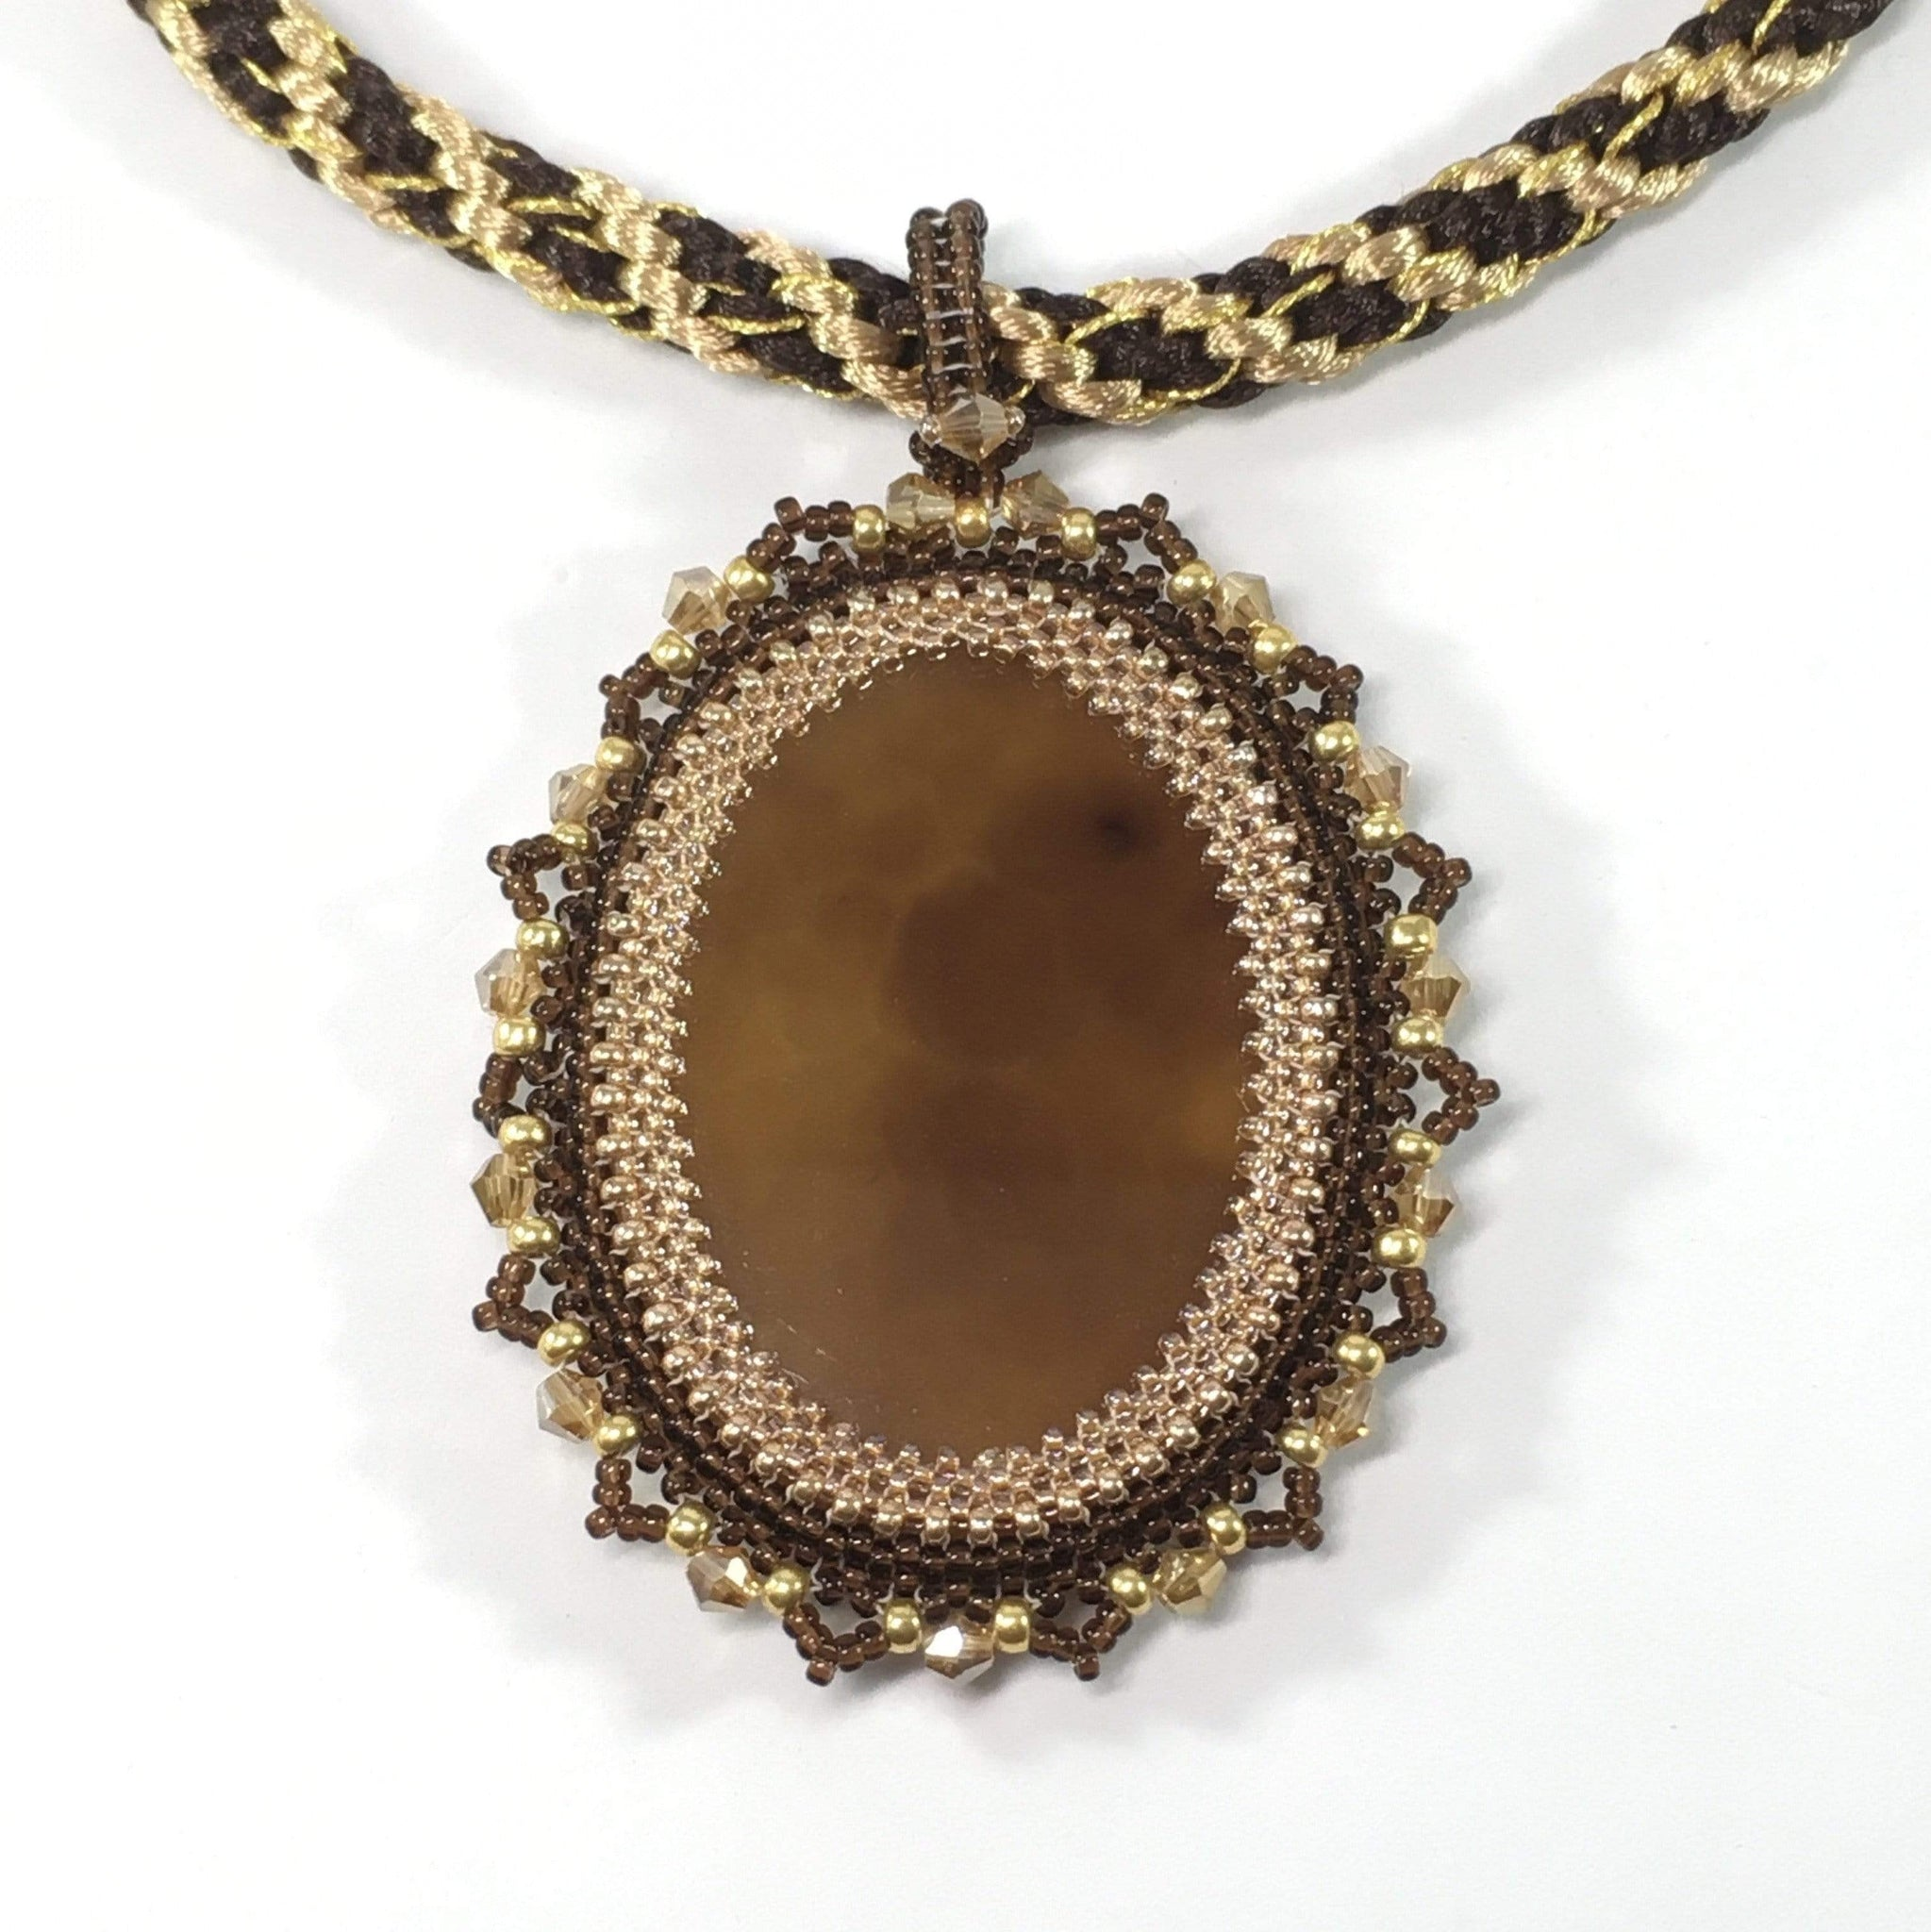 Handmade Brown Onyx Gemstone Beaded Pendant Necklace